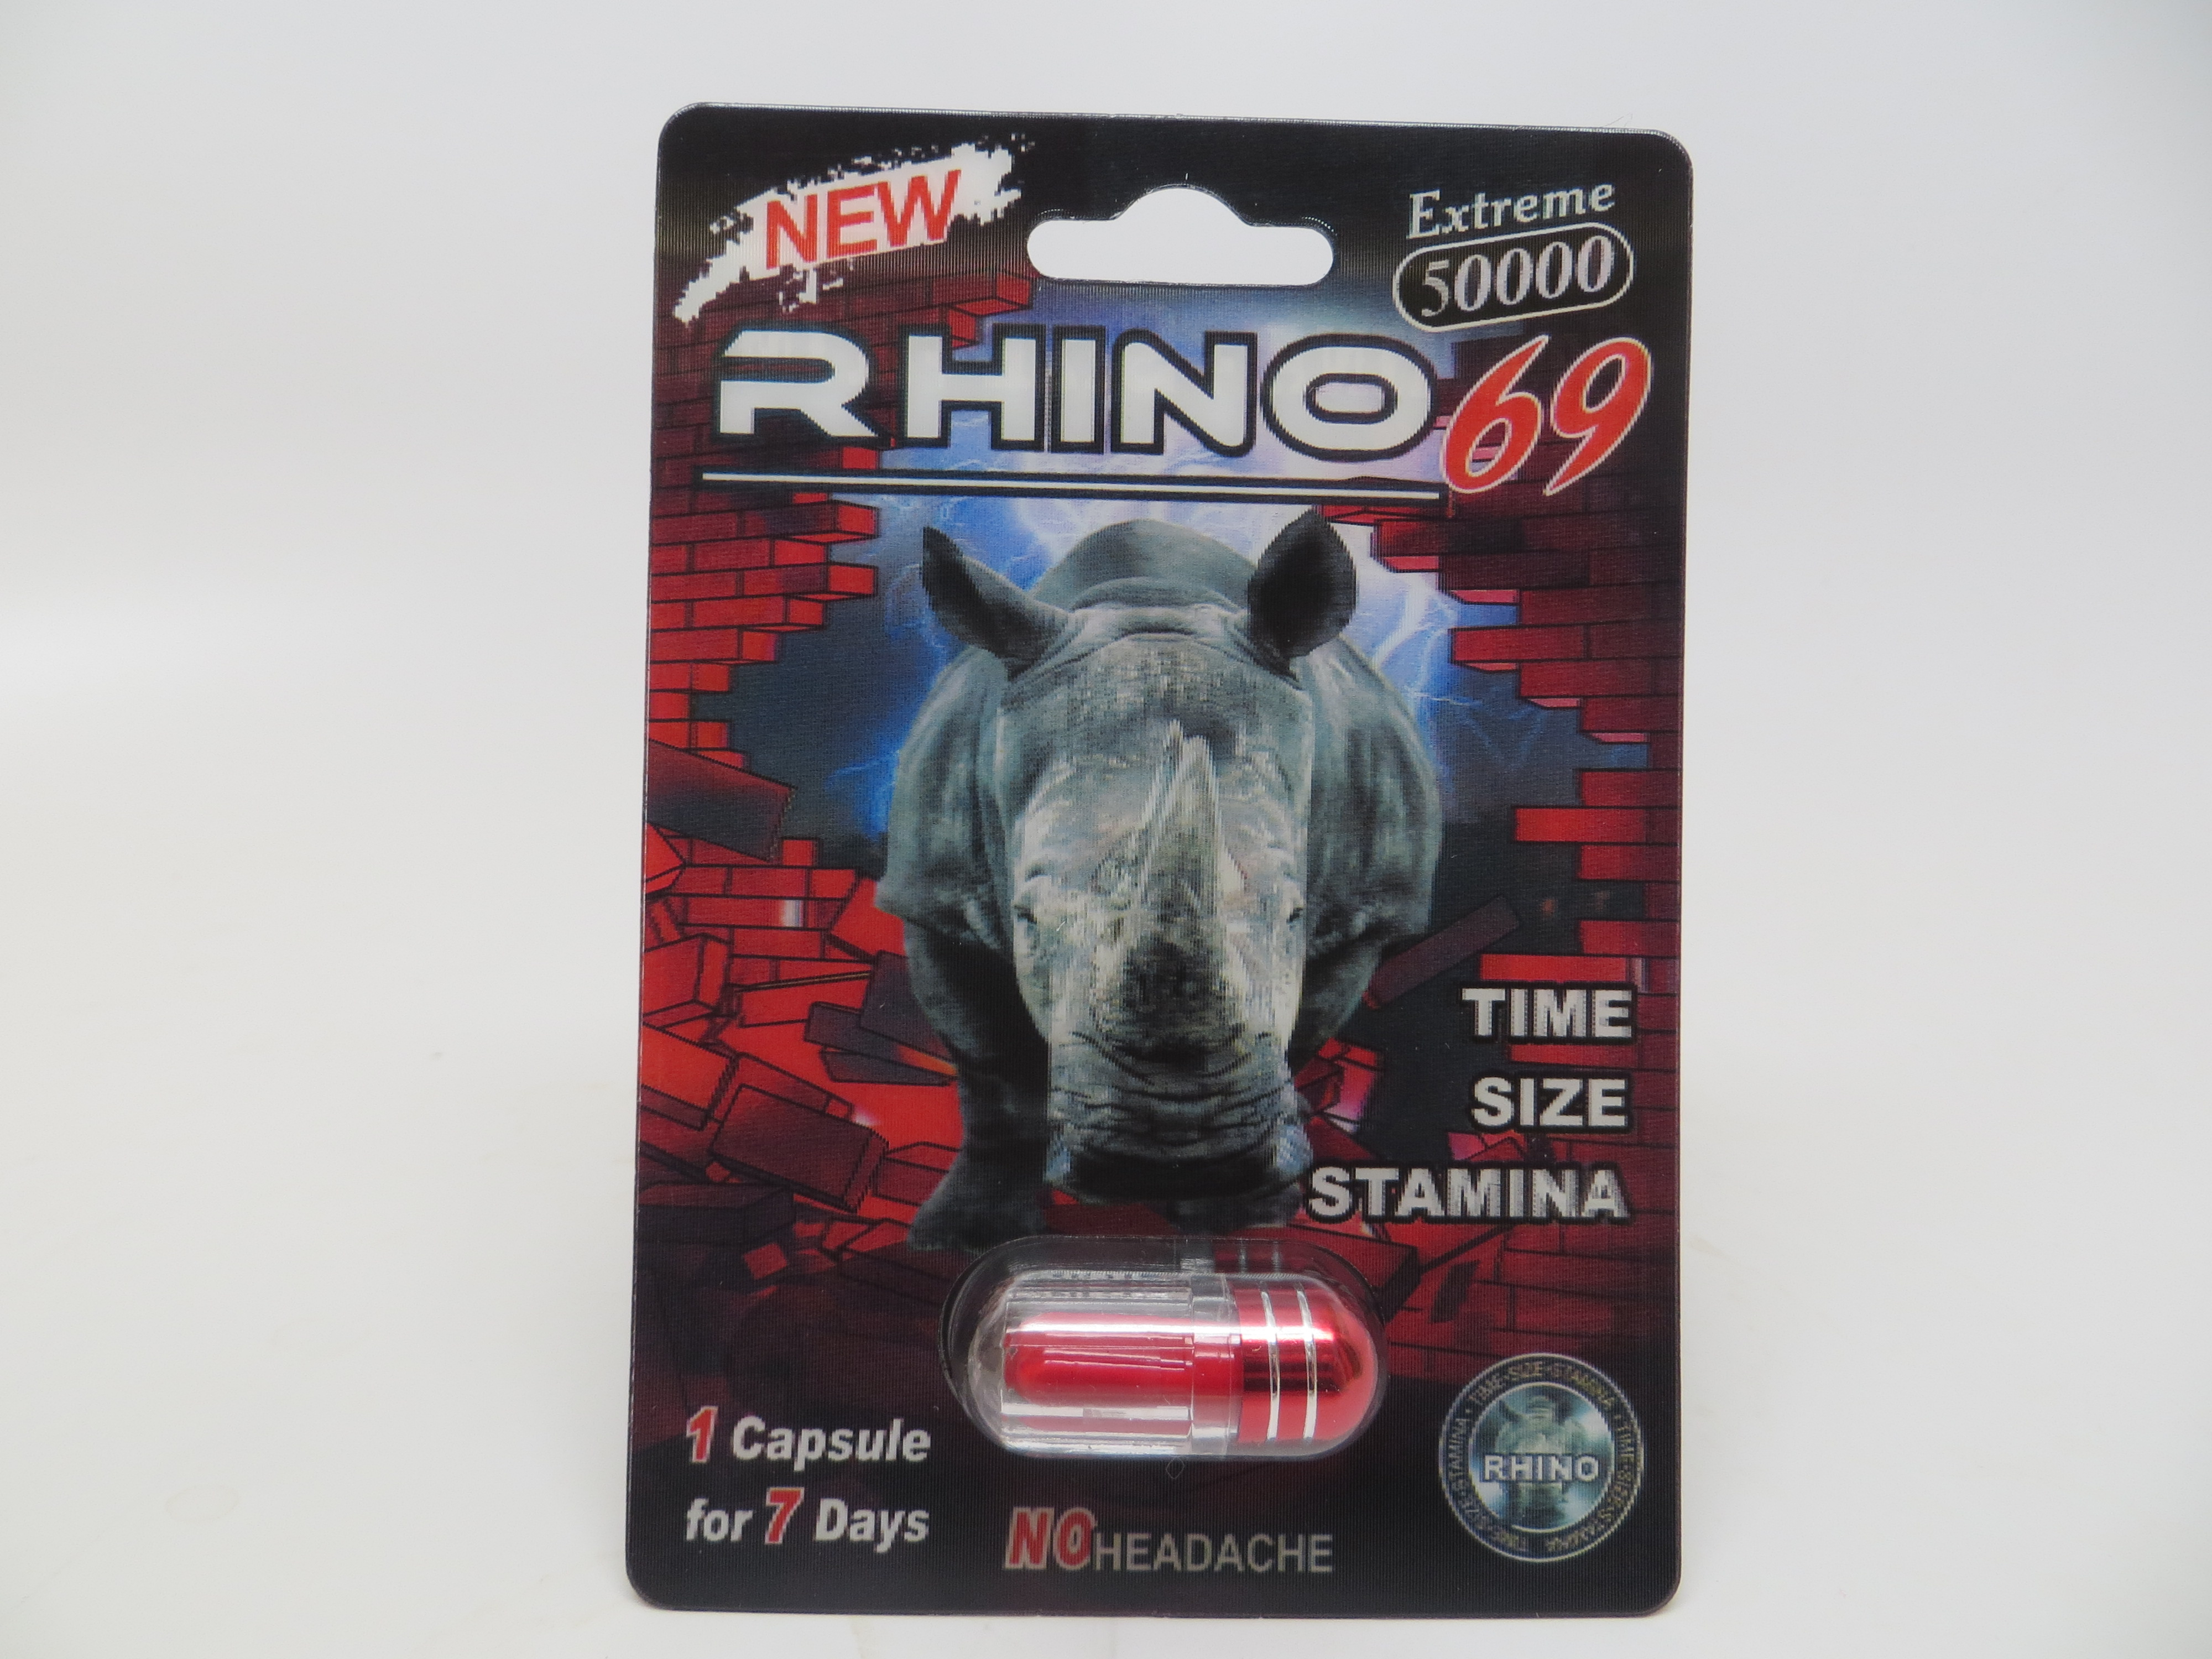 Image of the illigal product: Rhino 69 Extreme 50000